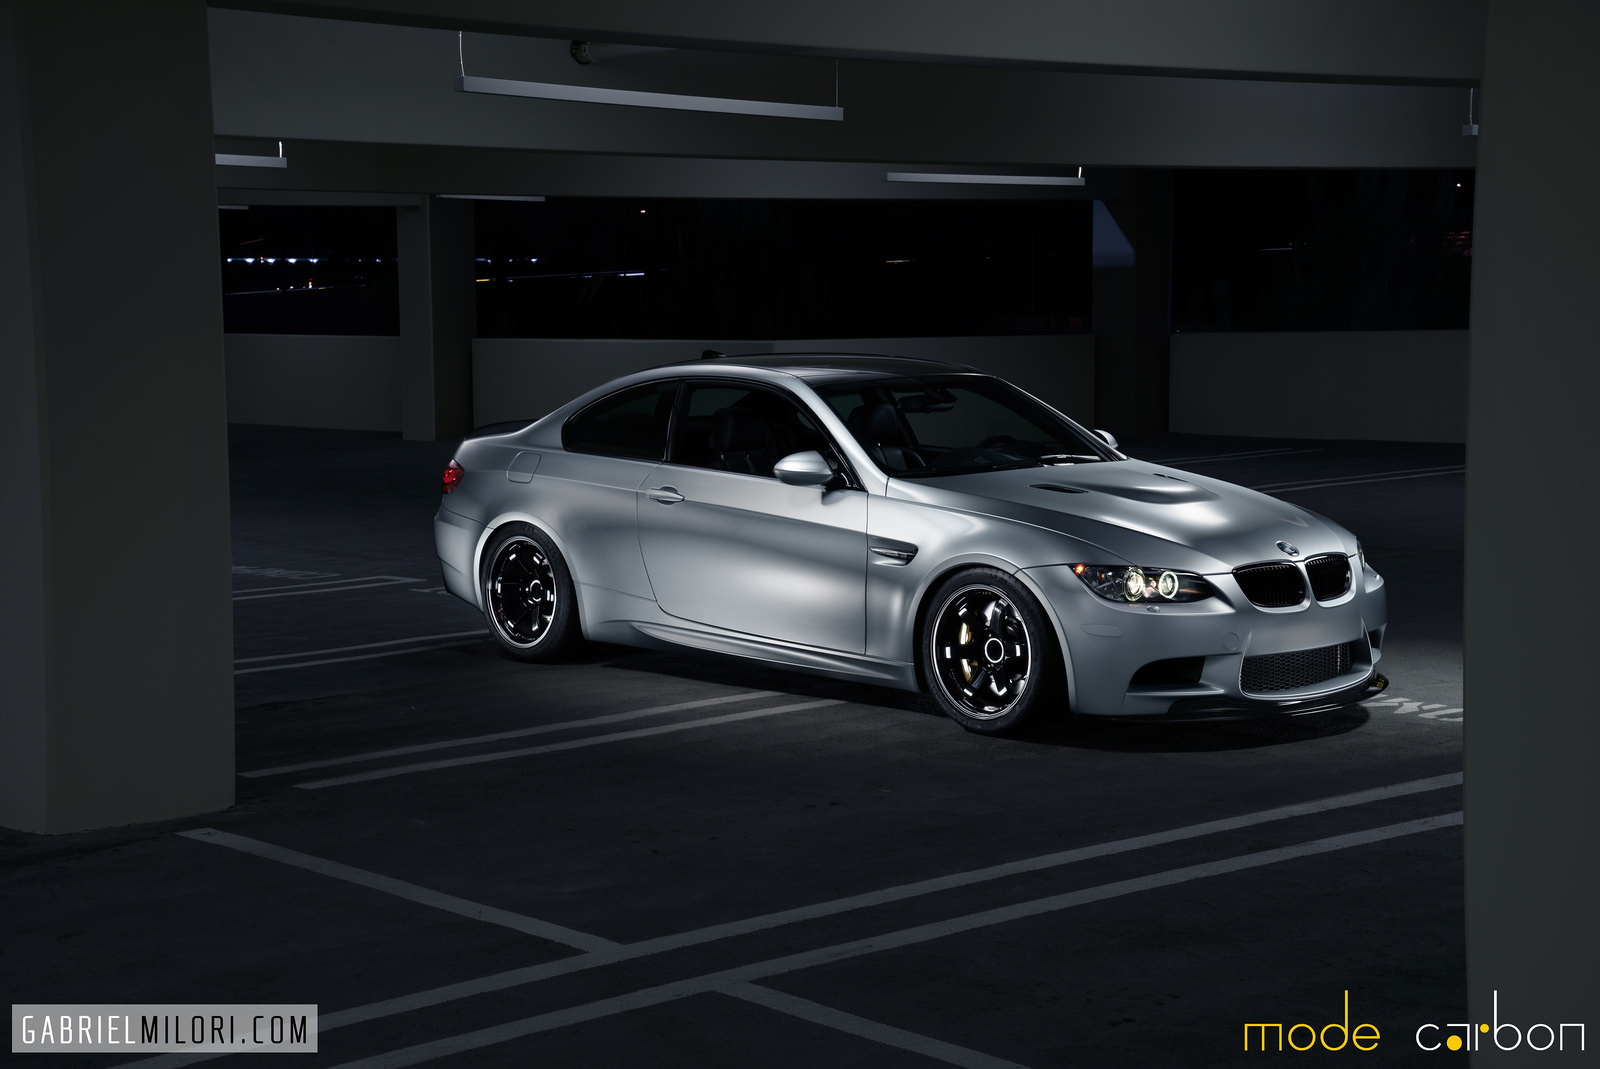 Santorini Blue Bmw E92 M3 Is Back And This Time It